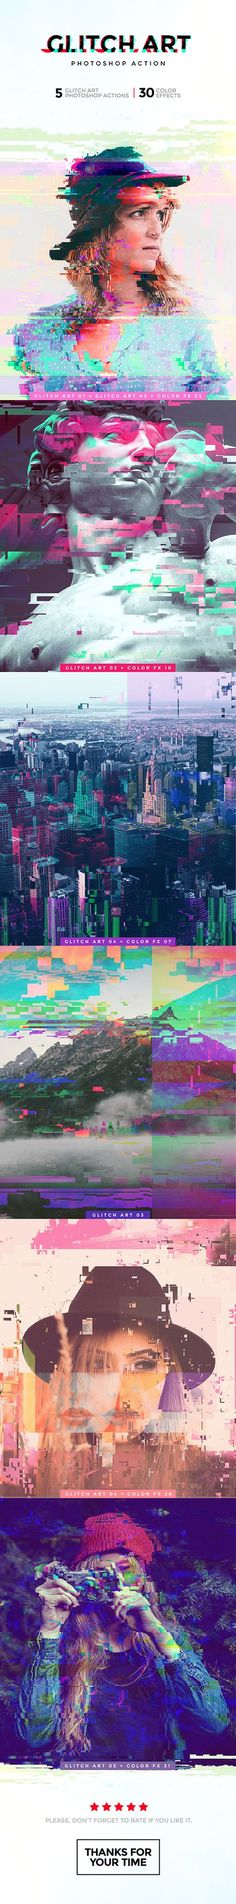 Glitch Art Photoshop Action — Photoshop ATN #instagram #colors • Download ➝ https://graphicriver.net/item/glitch-art-photoshop-action/19032075?ref=pxcr